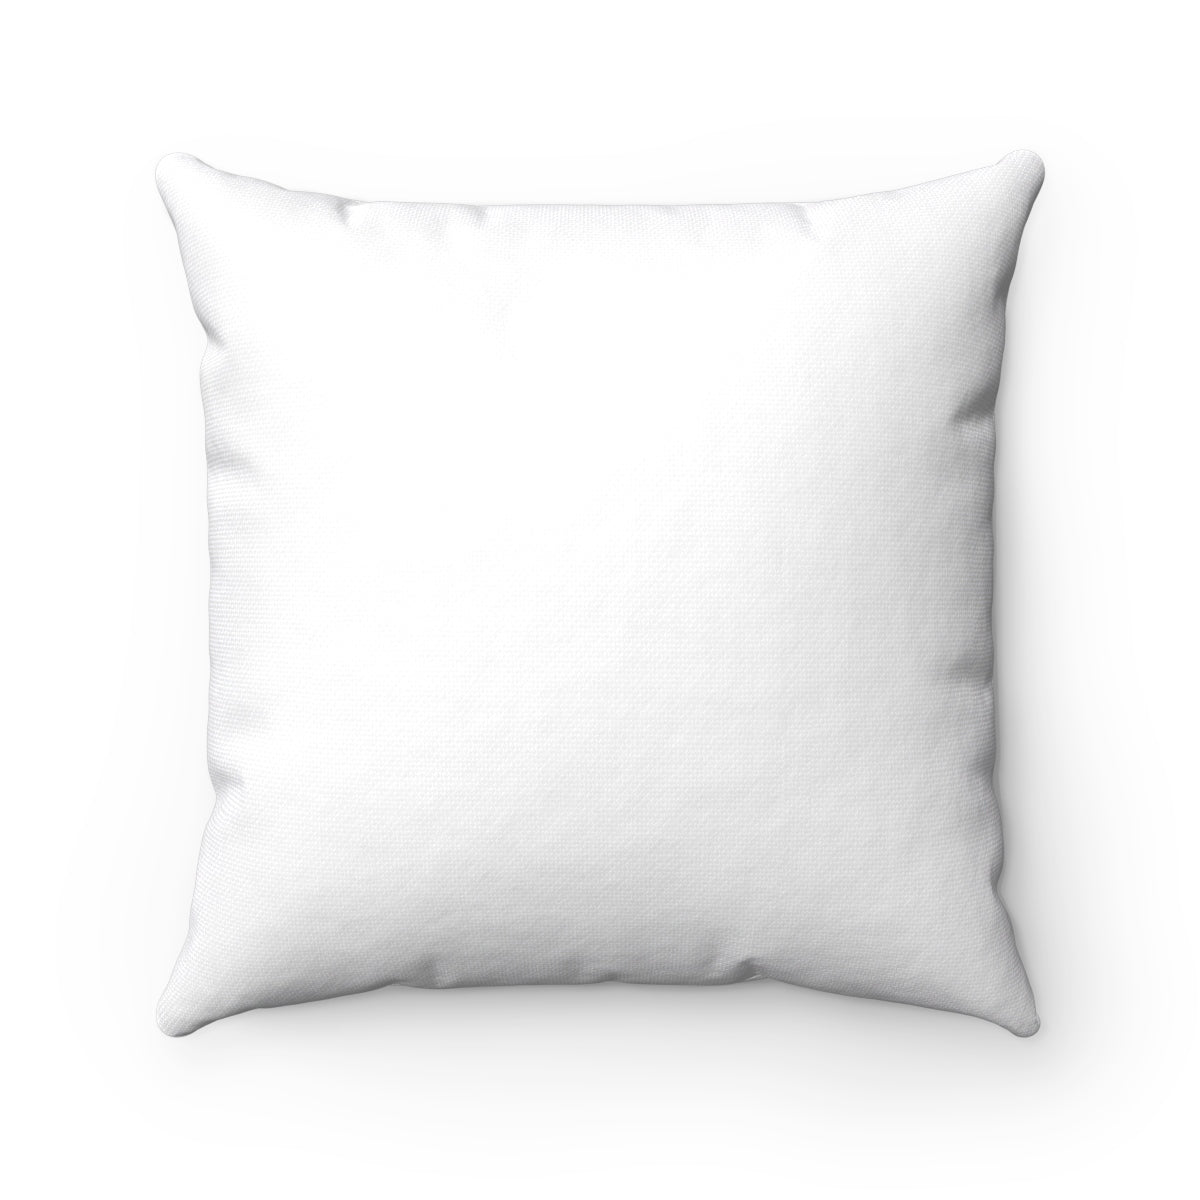 white decorative throw pillow - Liz Kapiloto Art & Design